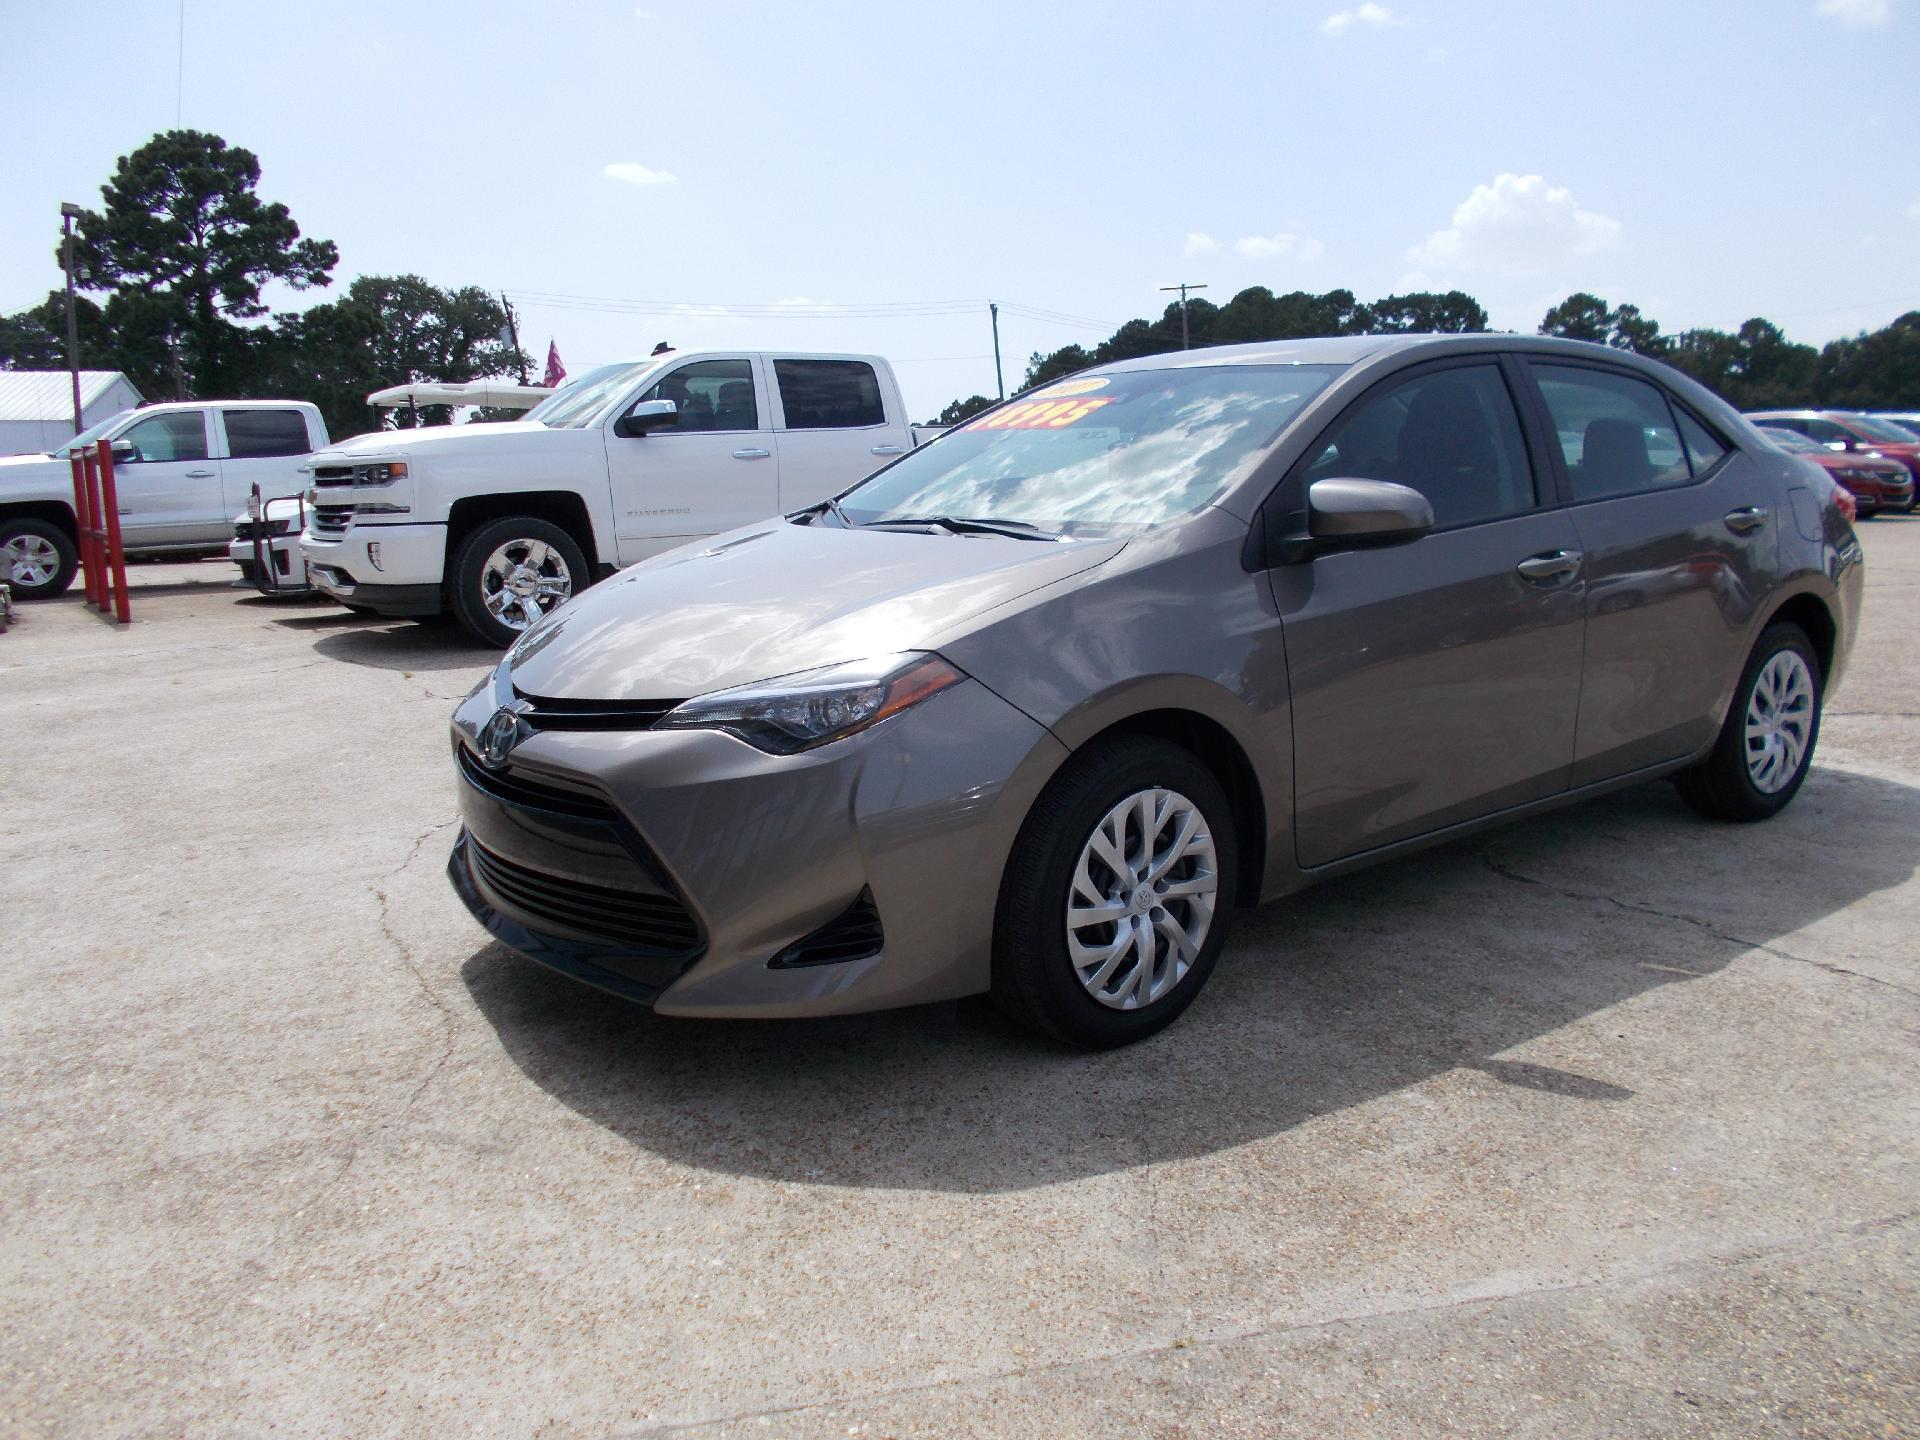 Used toyota Corolla for Sale Inspirational Winnfield Used toyota Corolla Vehicles for Sale